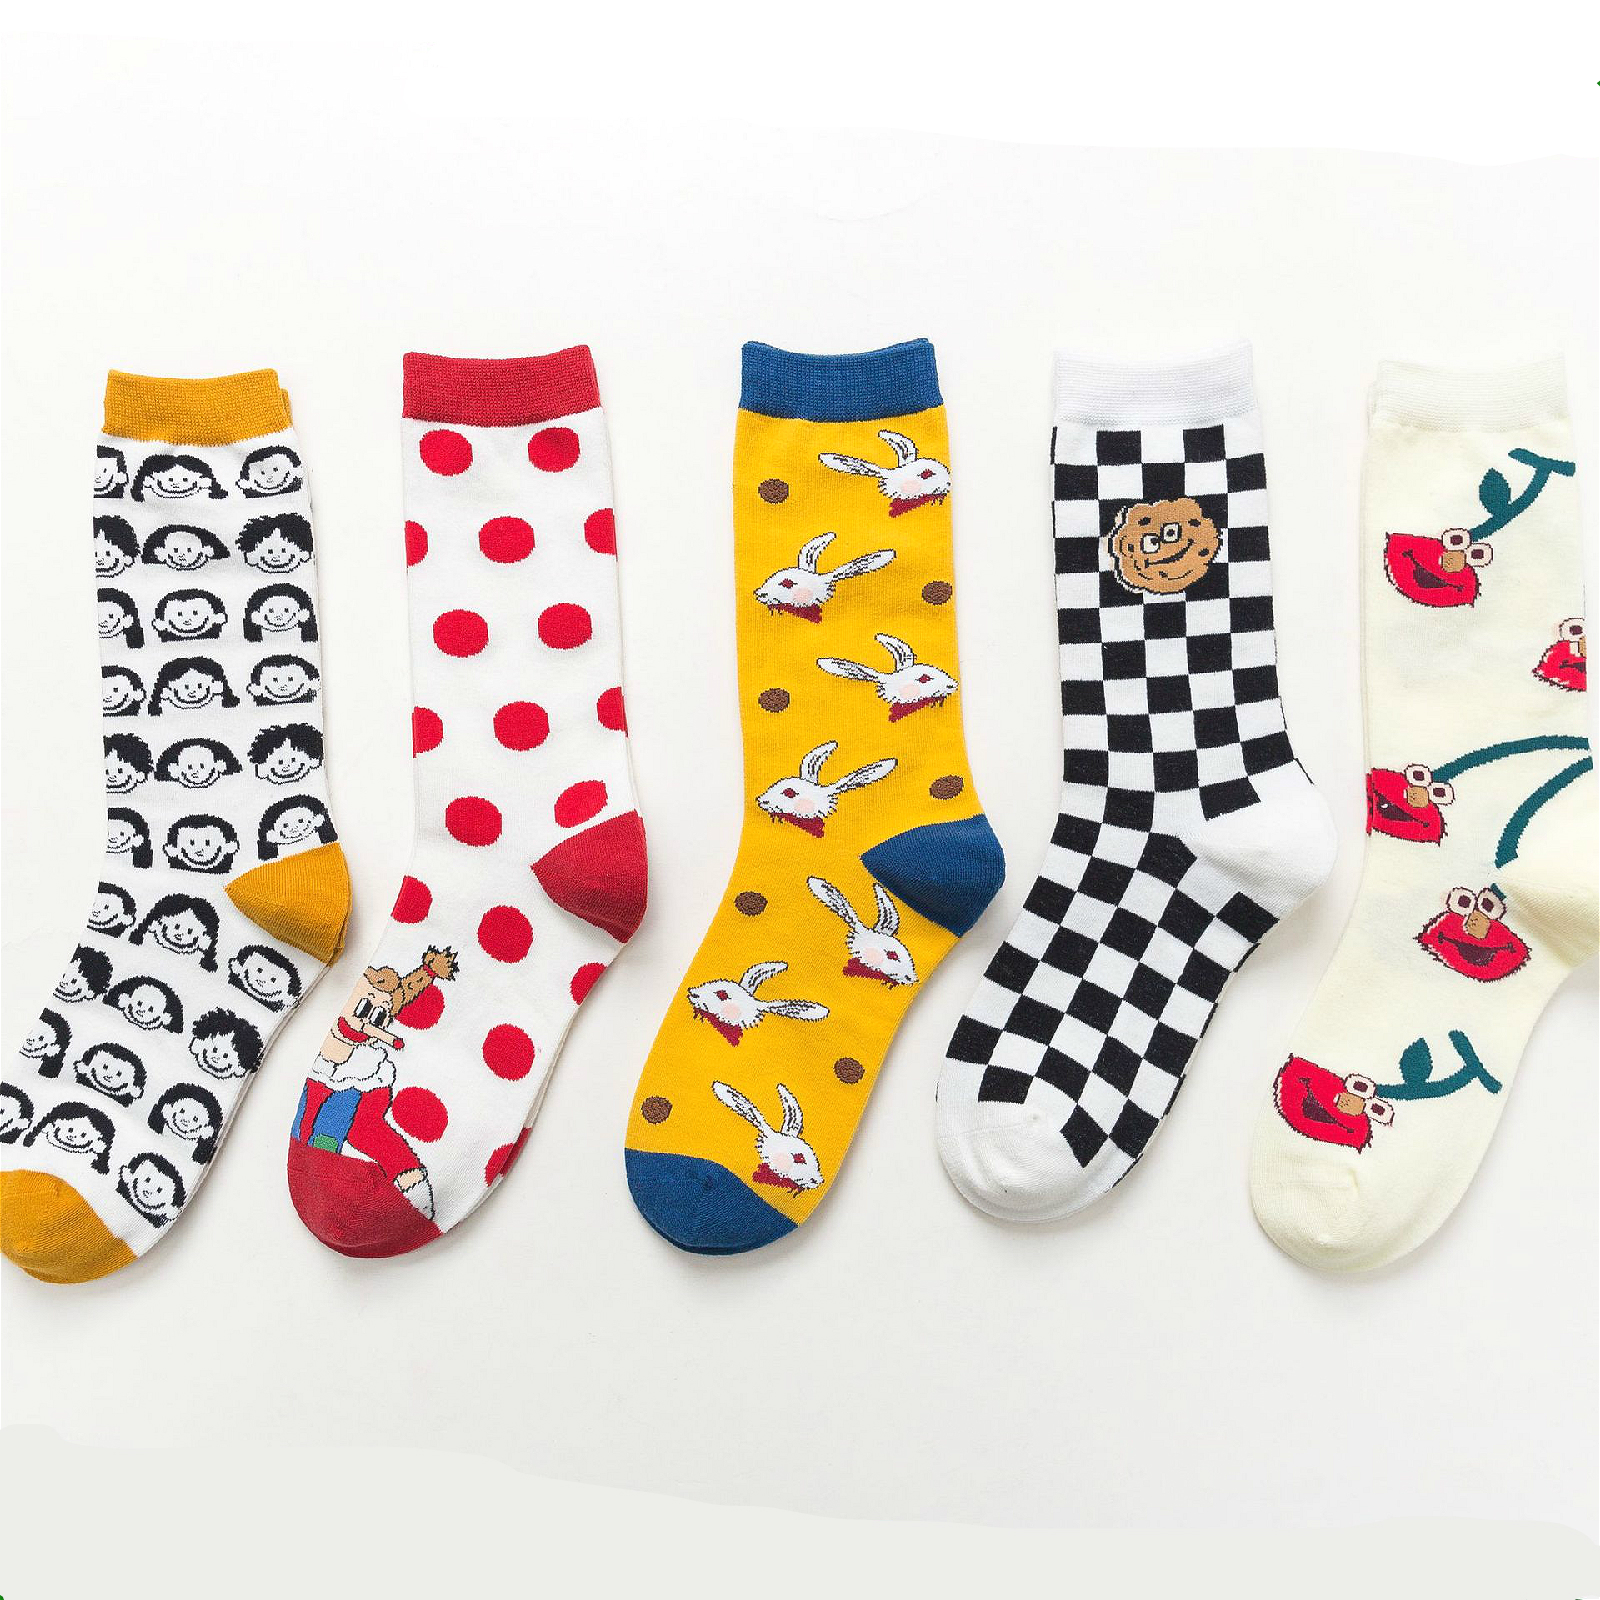 PEONFLY Cute Cartoon Happy Socks Women Lovely Rabbit Printed Casual Comfortable Socks Cherry Plaid Kawaii Motion Socks Femme